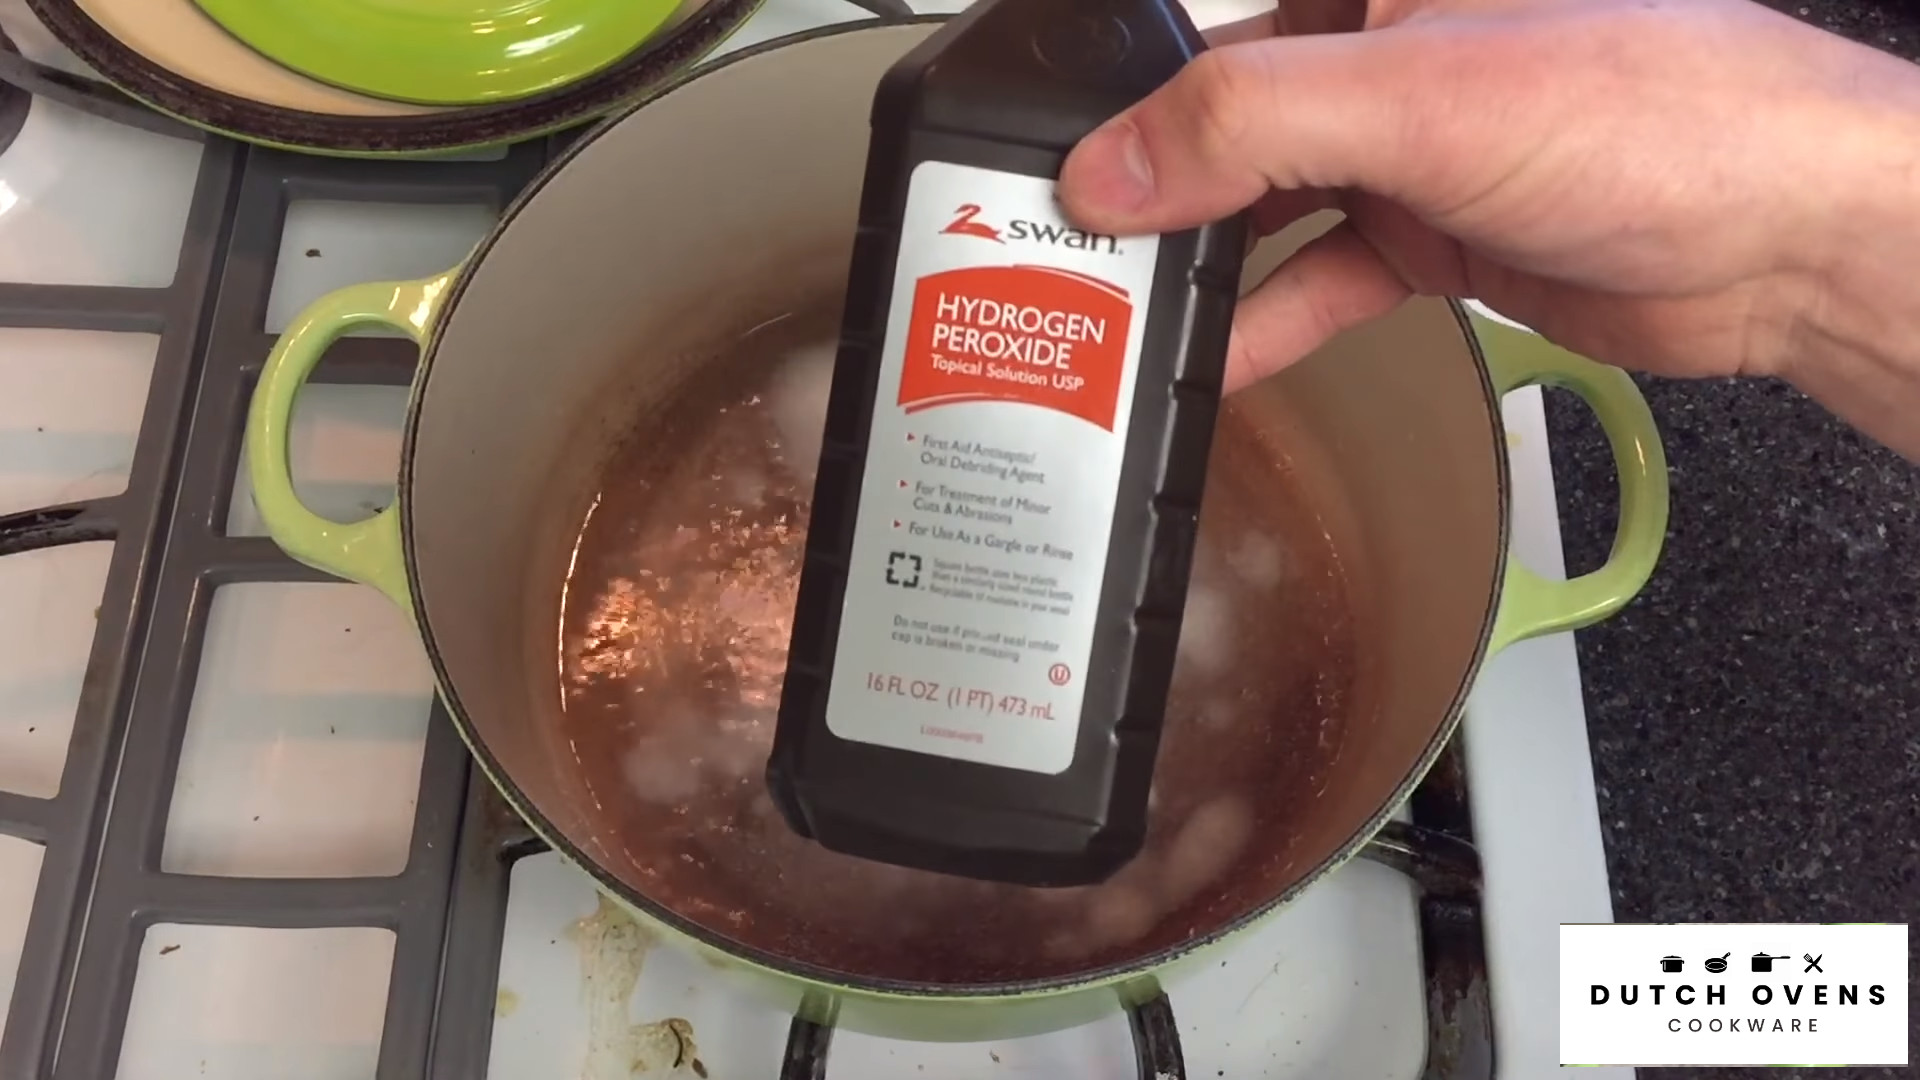 can you use soap to clean a dutch oven